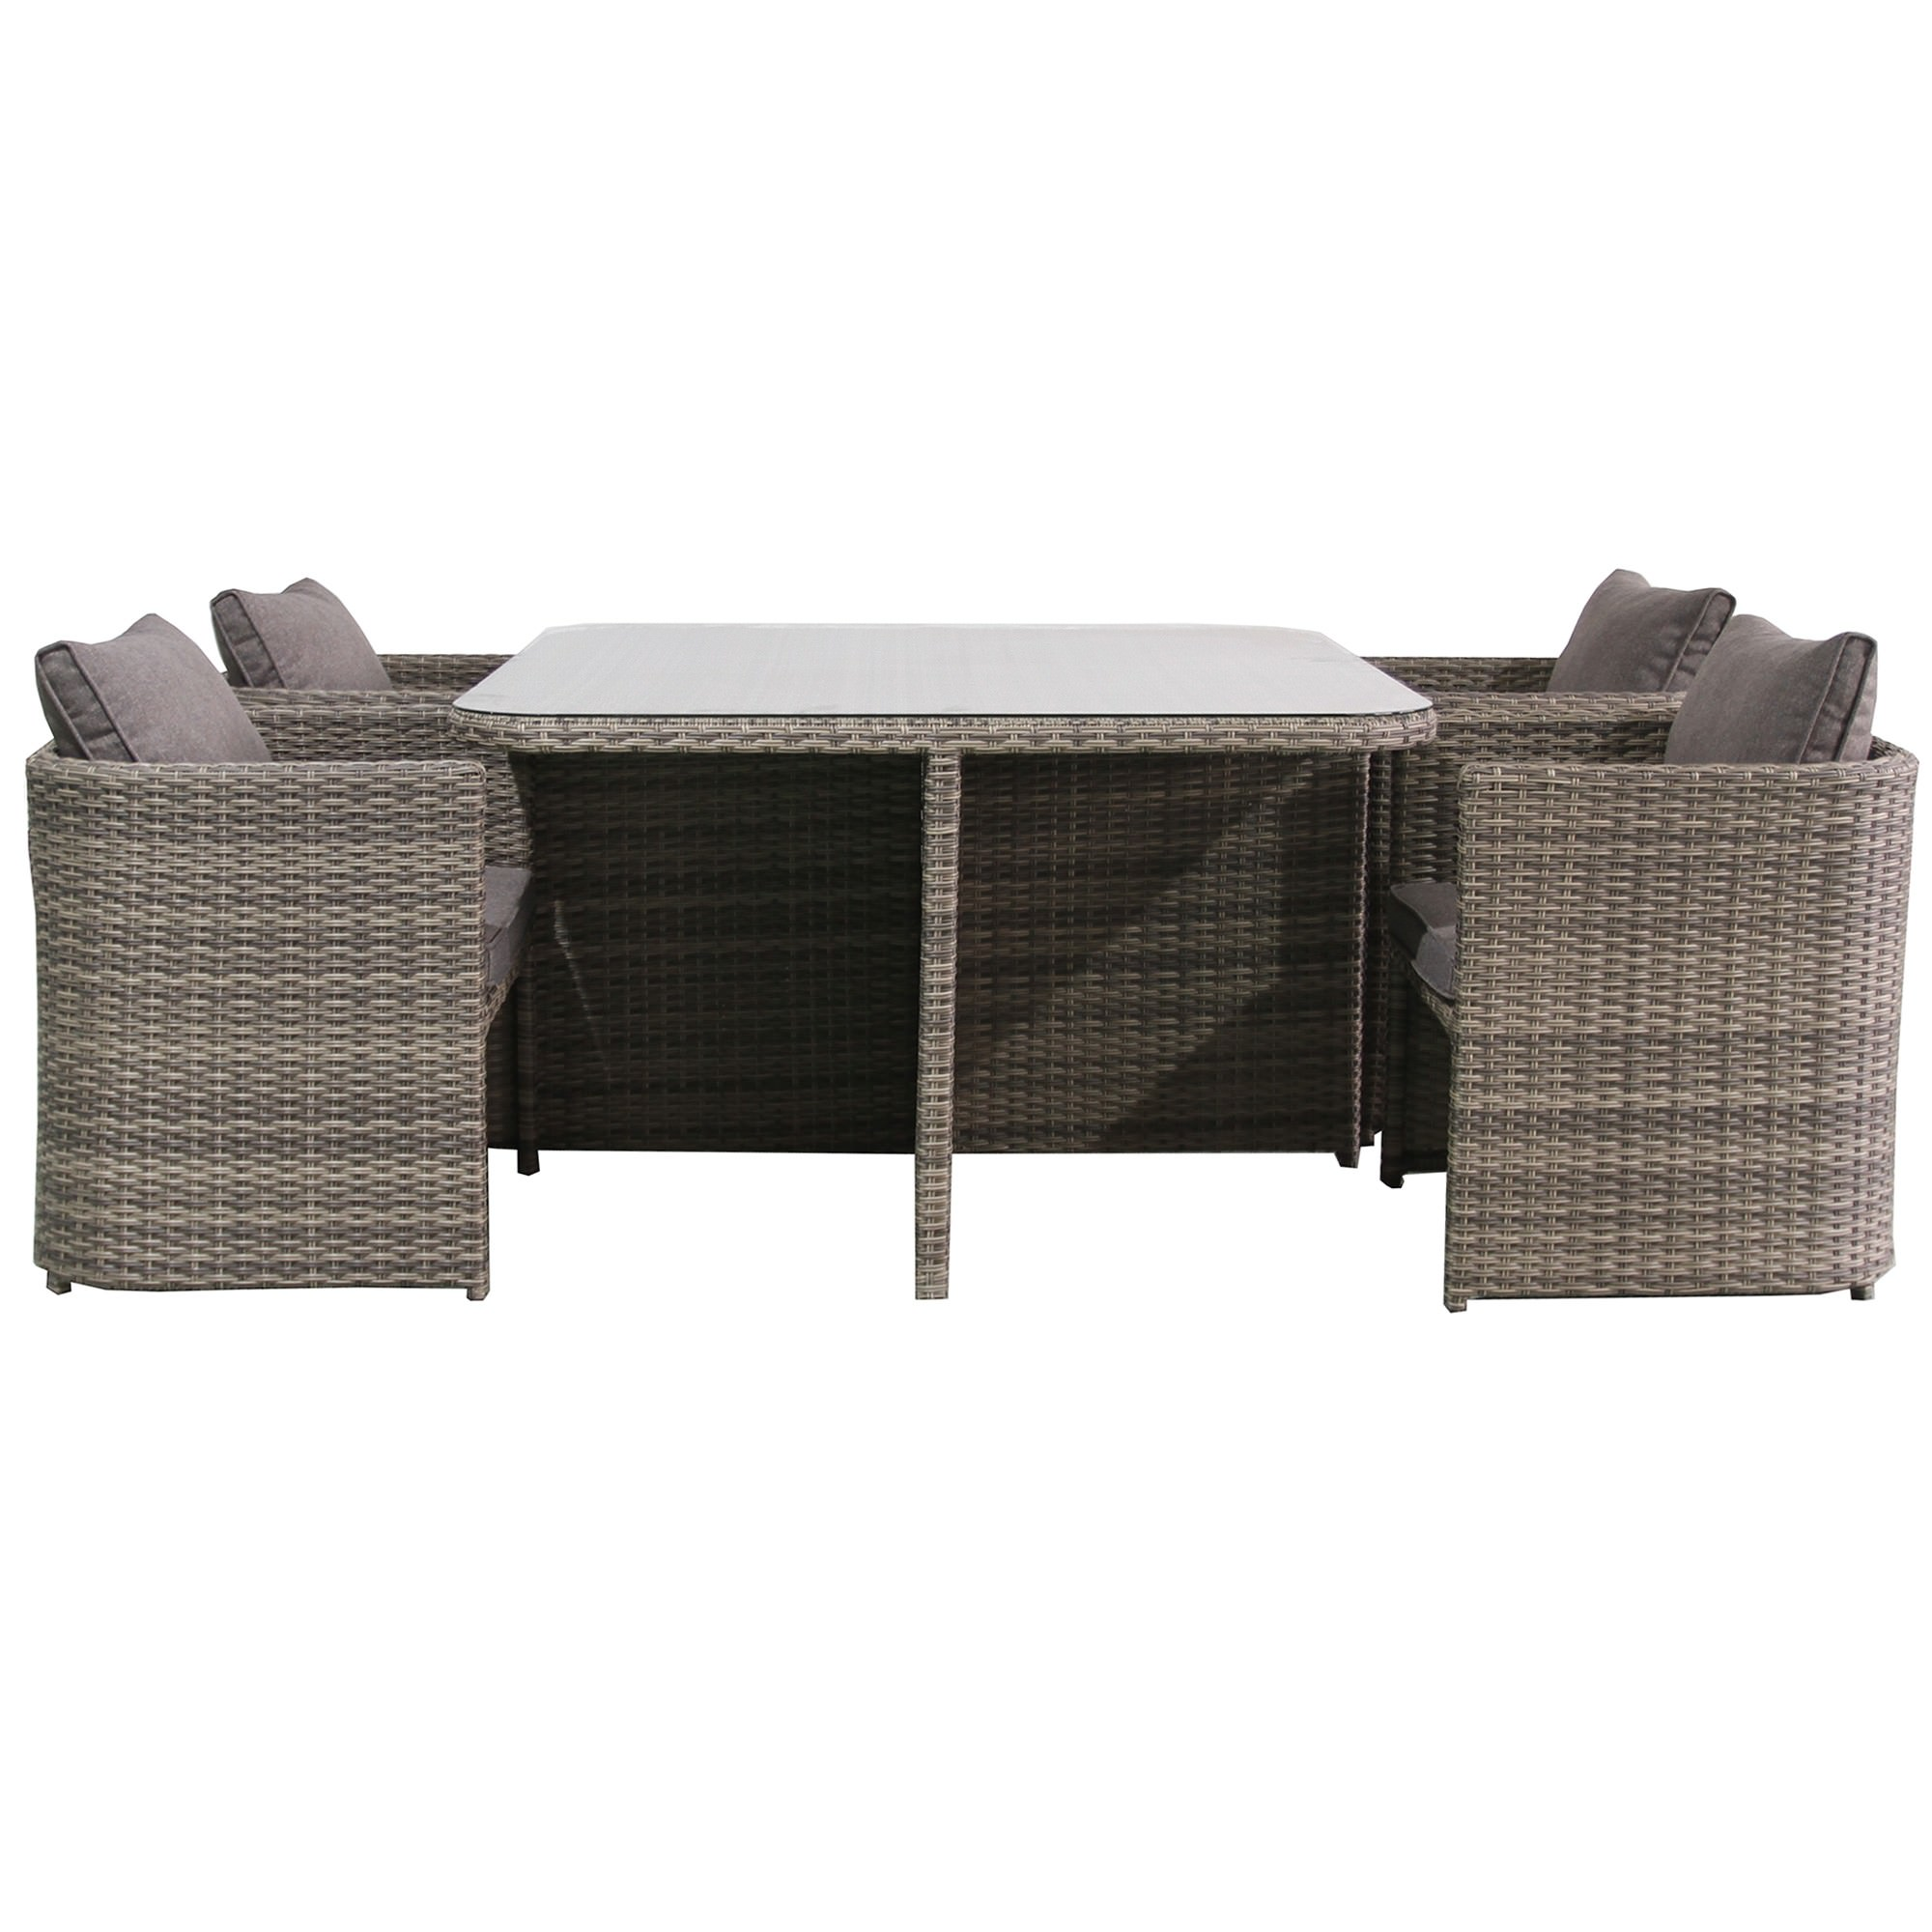 Ingrid 5 Piece Wicker Compact Balcony Dining Table Set, 120cm